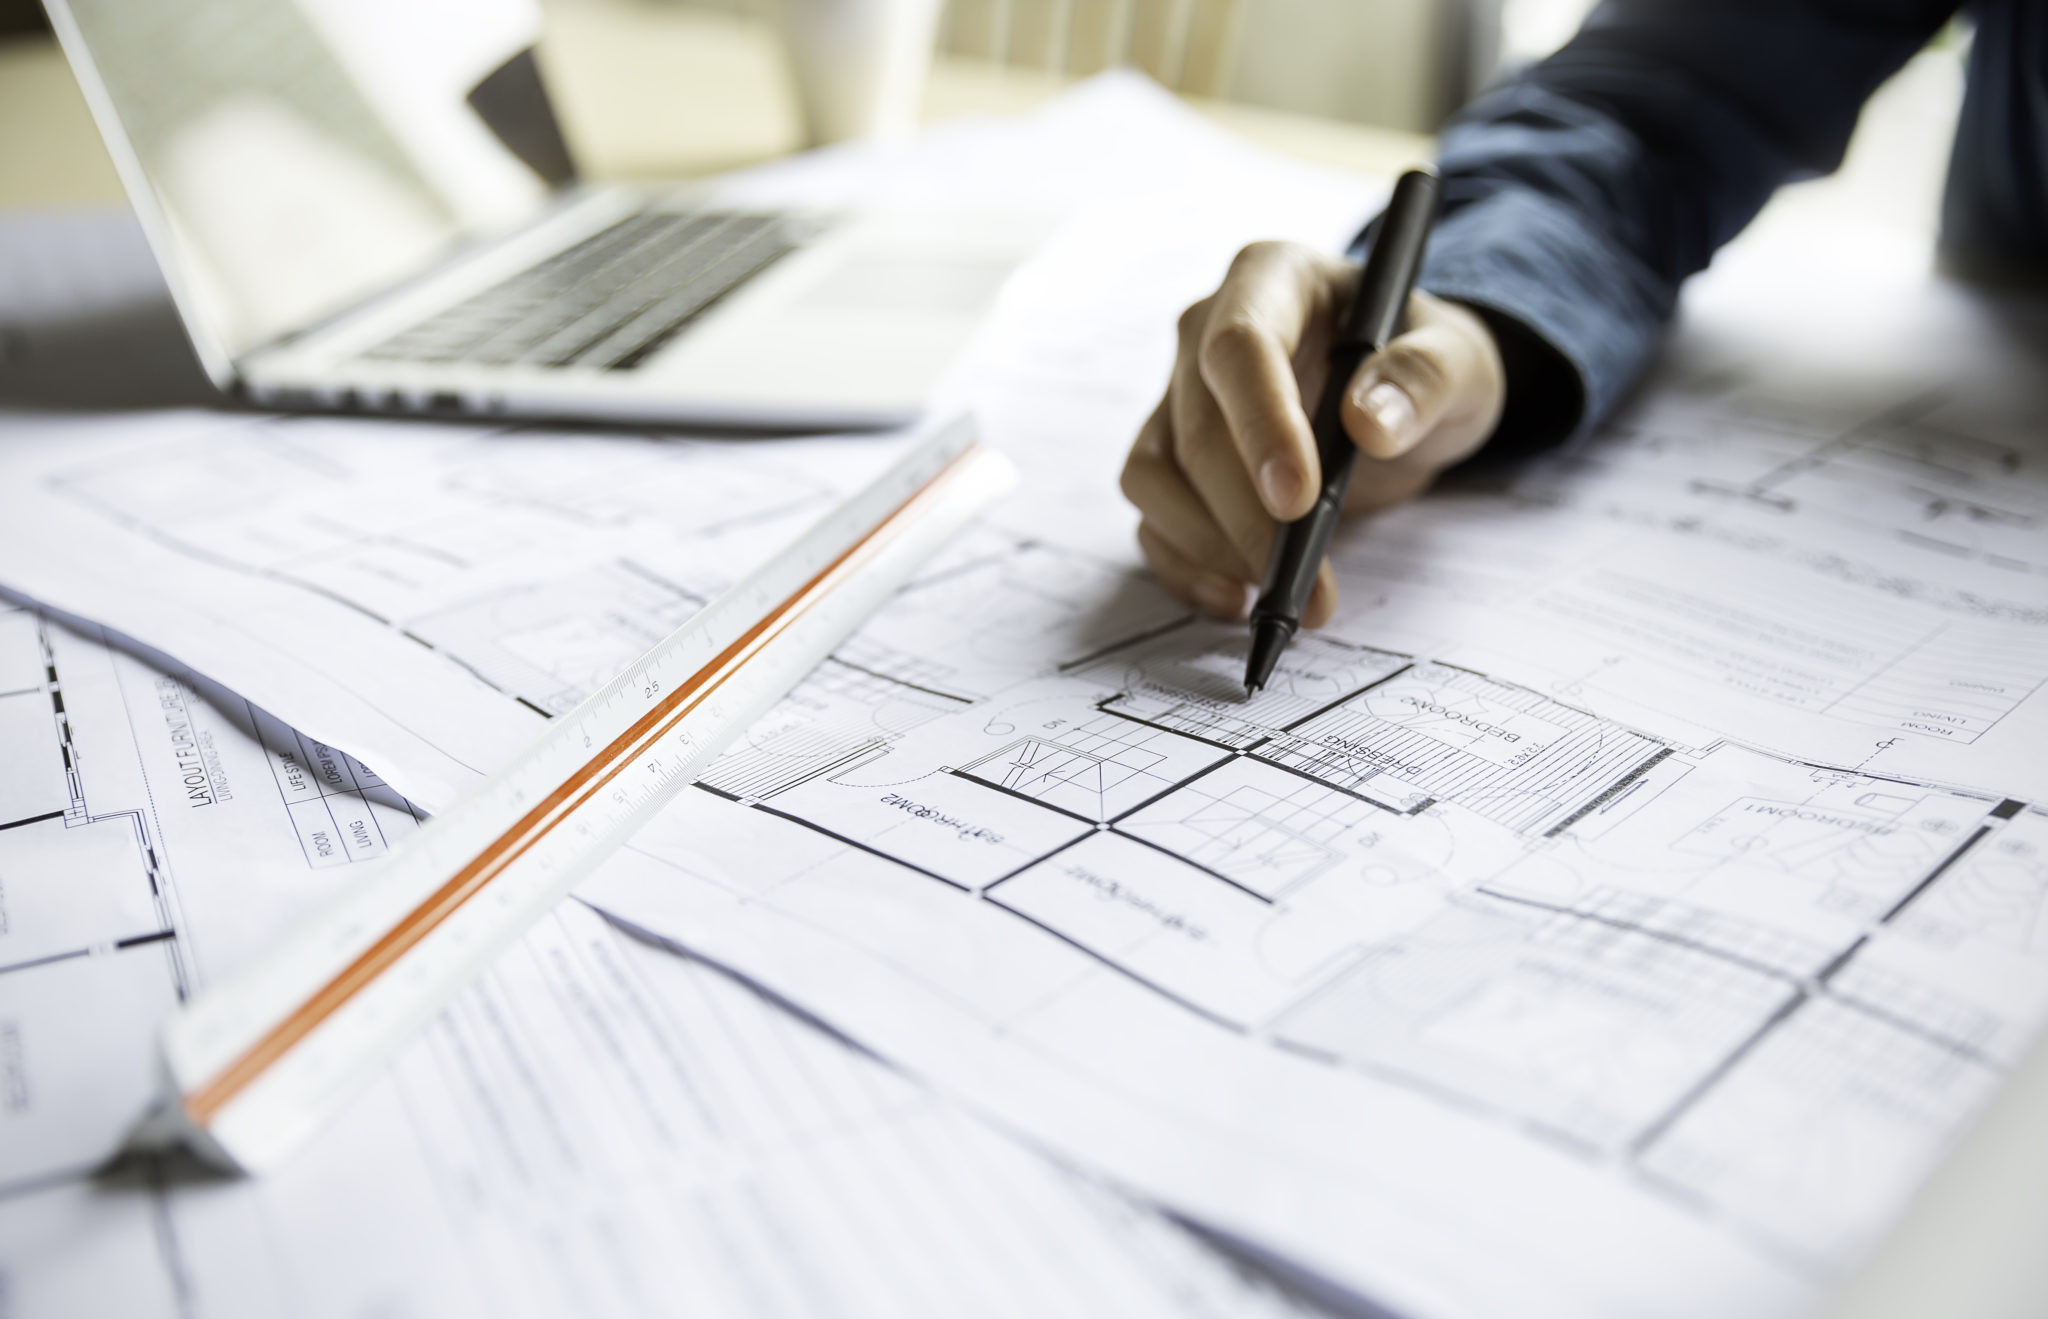 Close up woman hand working of Architect sketching project on blueprint at site construction work. Concept of architect, engineer in the office desk construction project